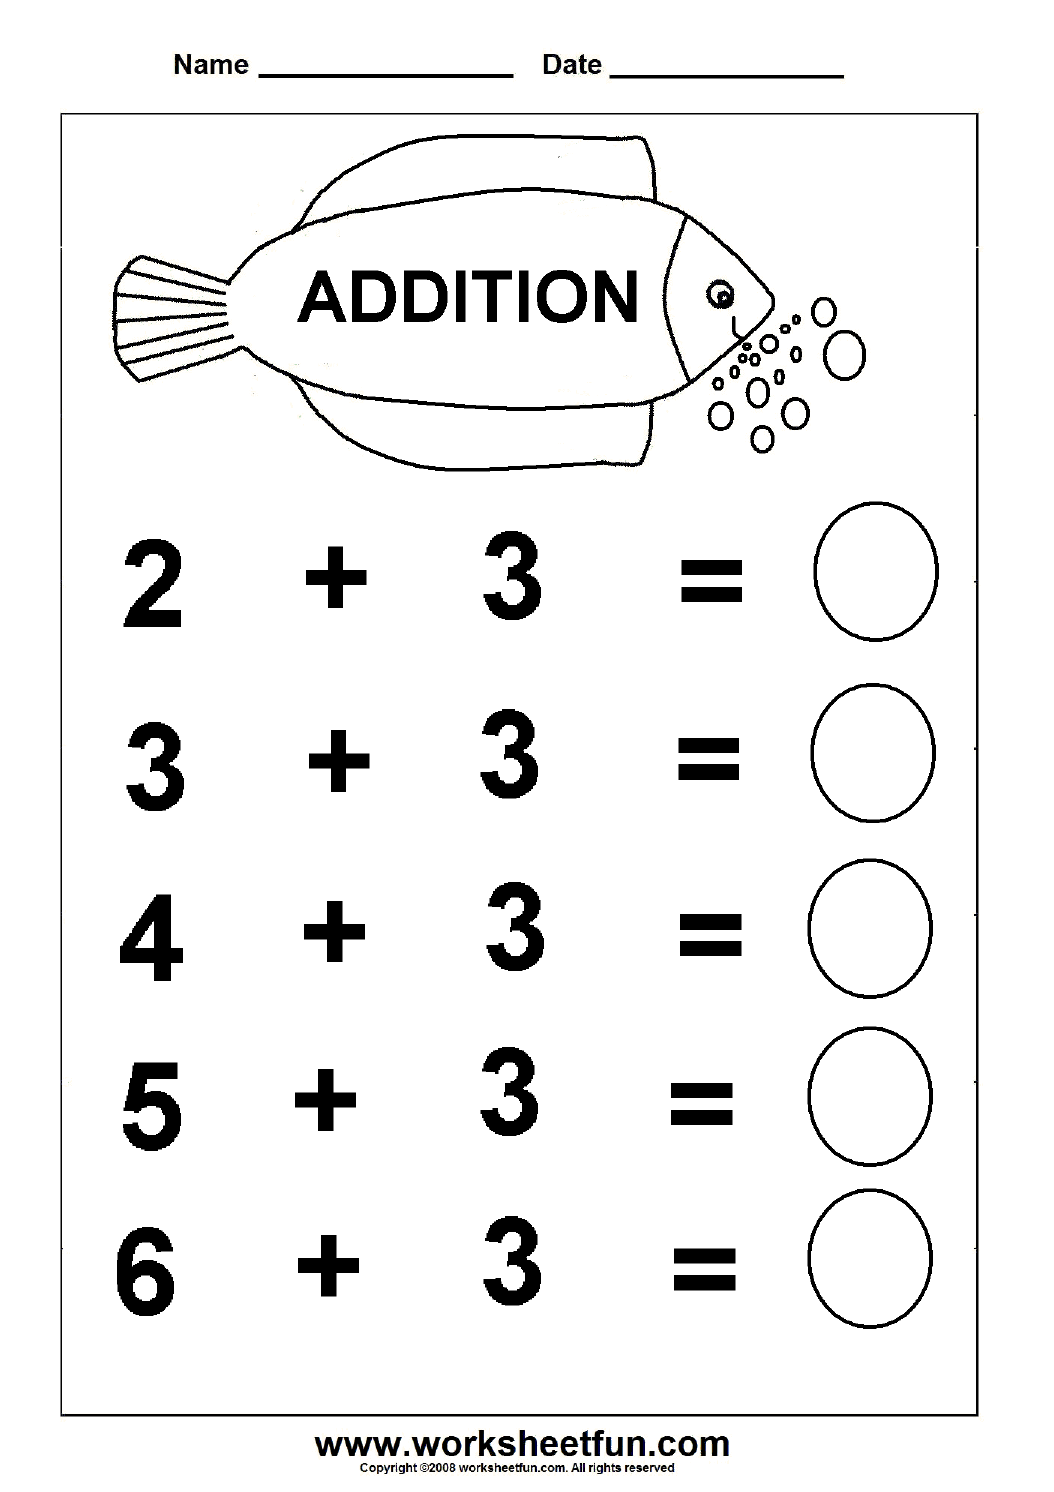 Worksheet Additions Worksheets beginner addition 6 kindergarten worksheets free subtraction worksheets